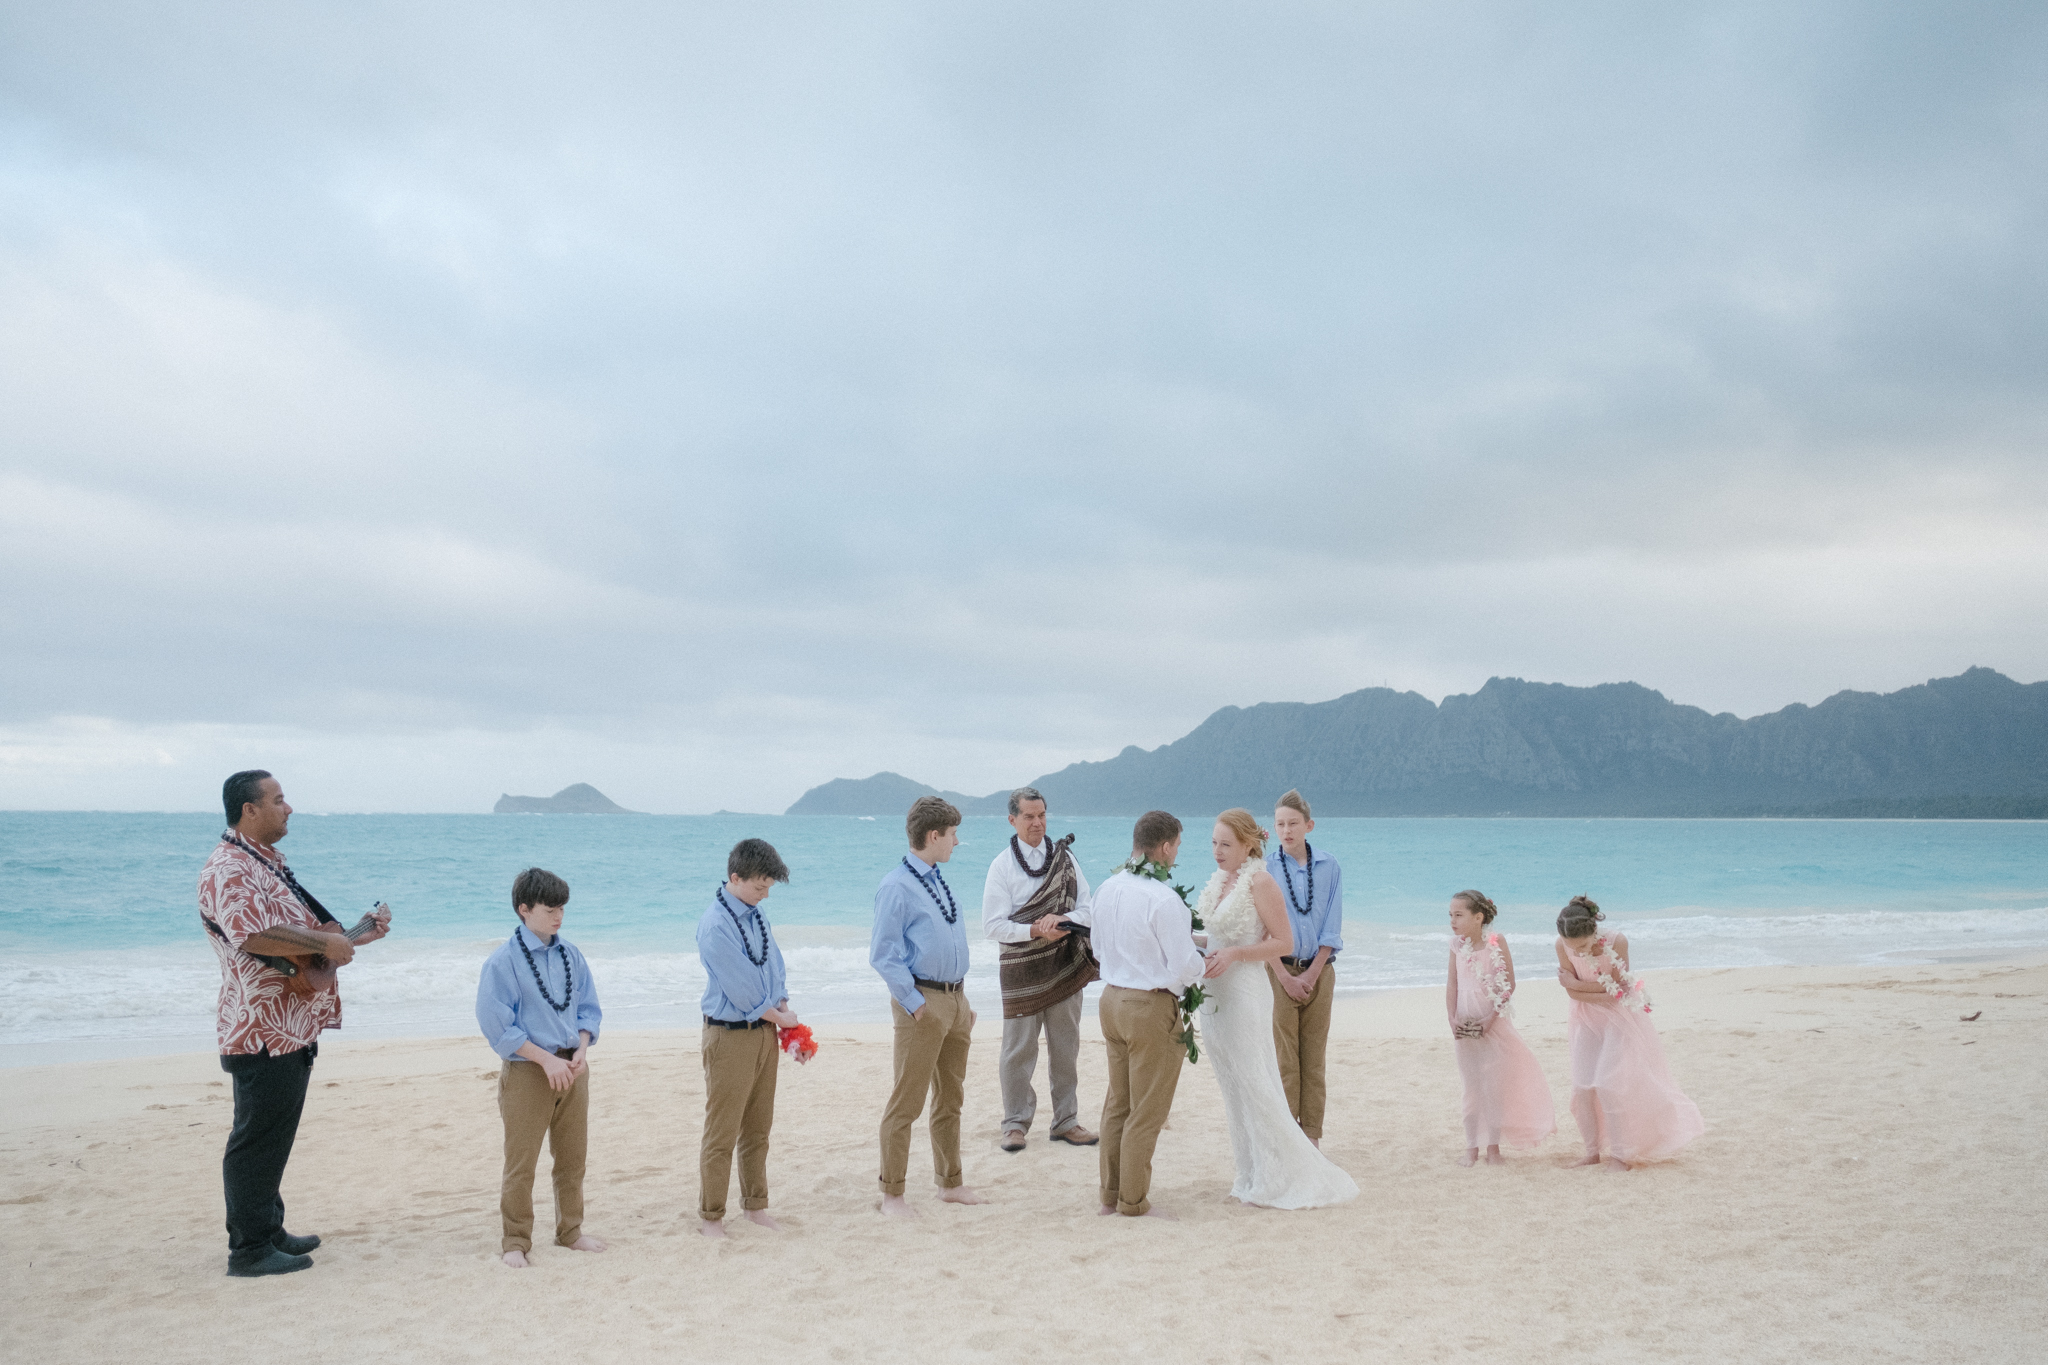 waimanalo_beach_wedding_photographer-21.jpg